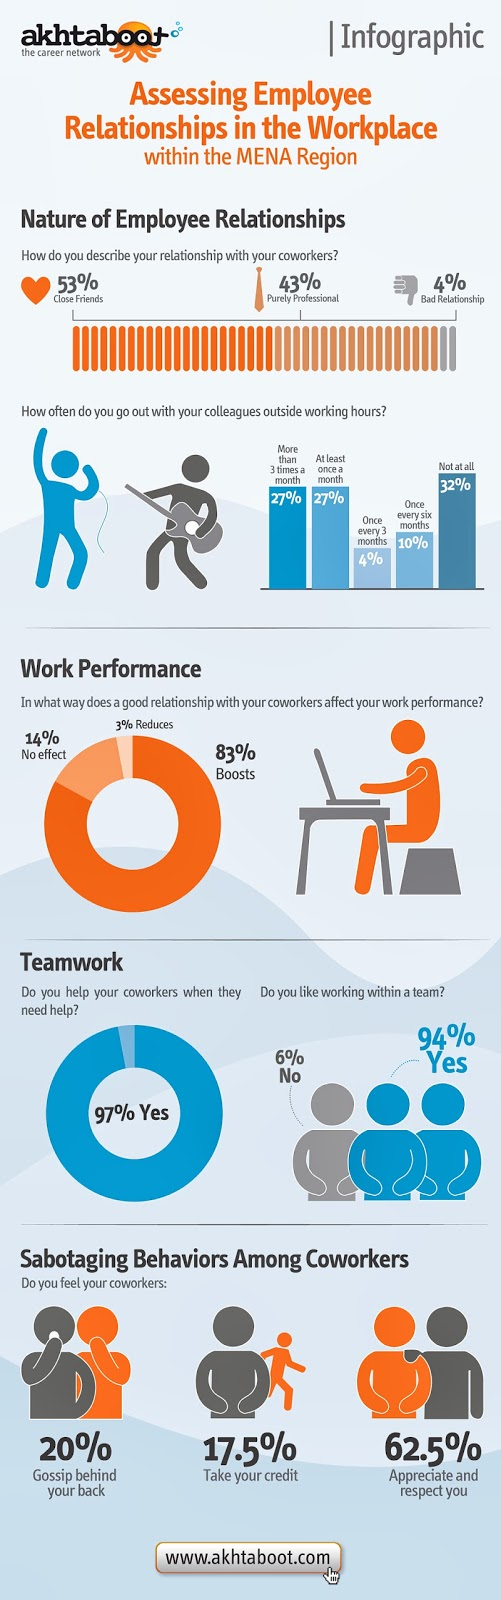 Infographic related to Thank You Messages for Coworkers